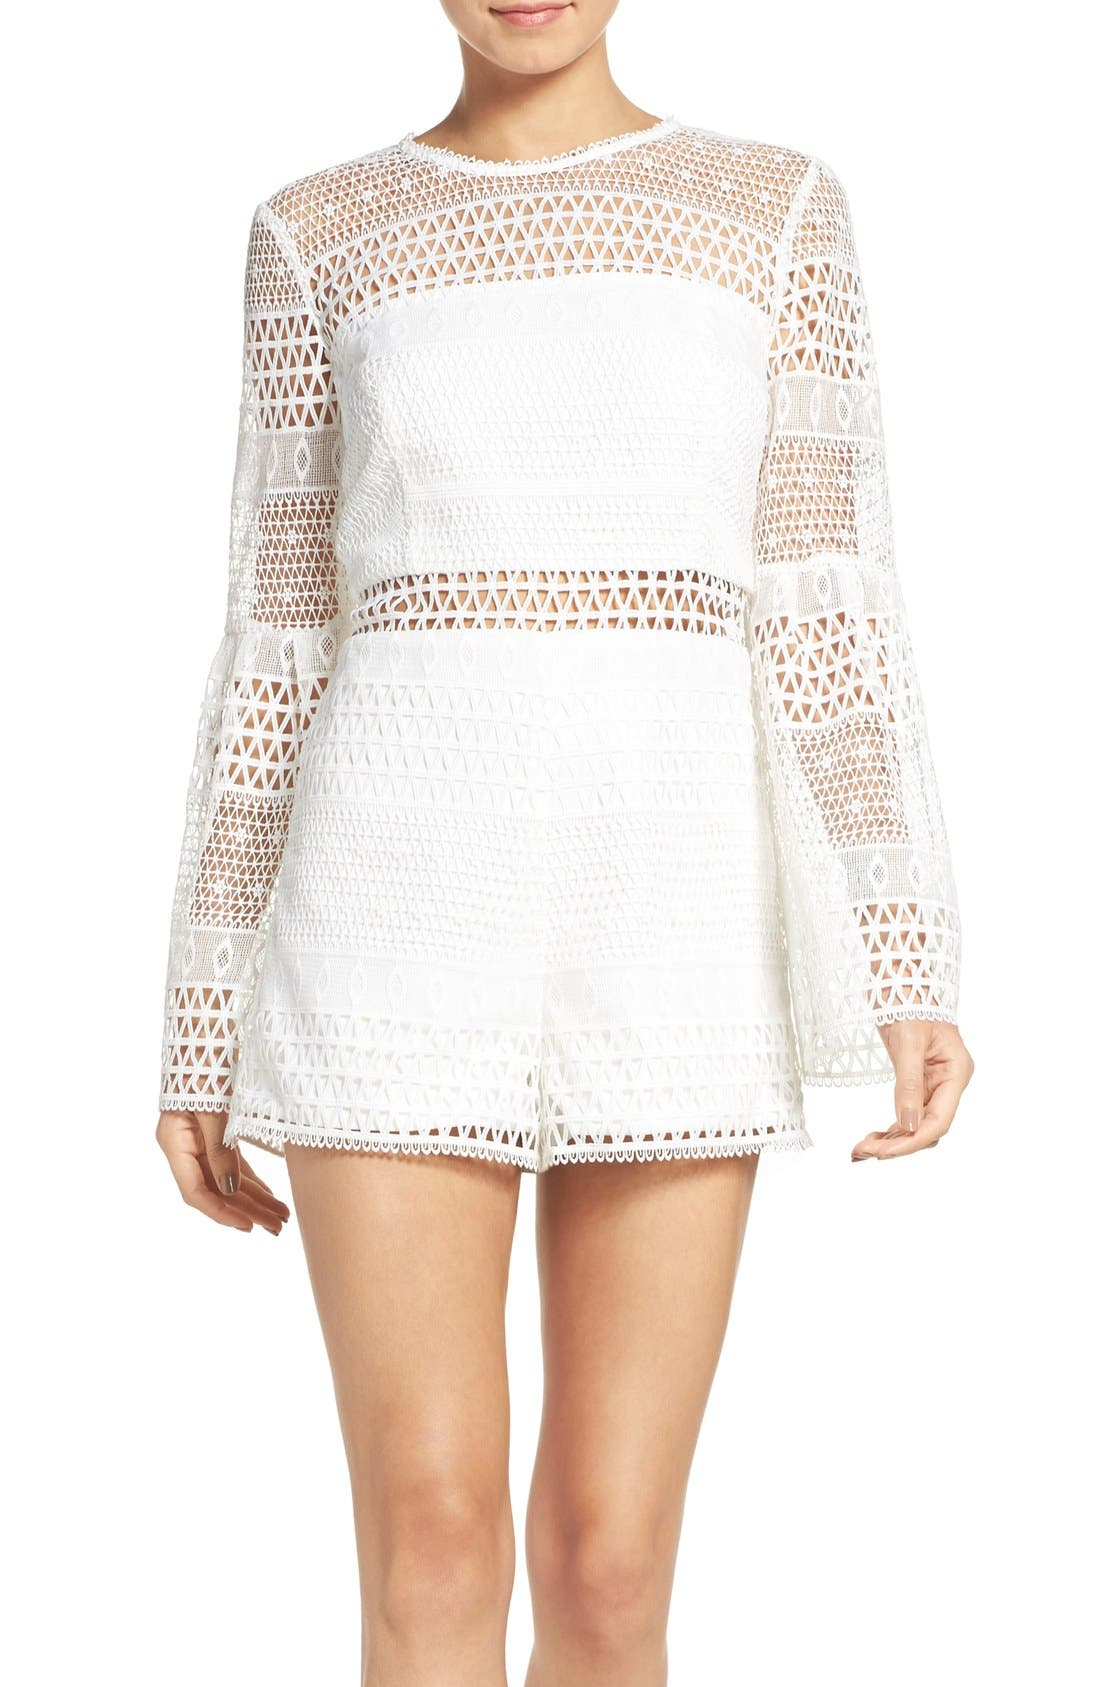 Alternate Image 1 Selected - Bardot Kristy Lace Romper